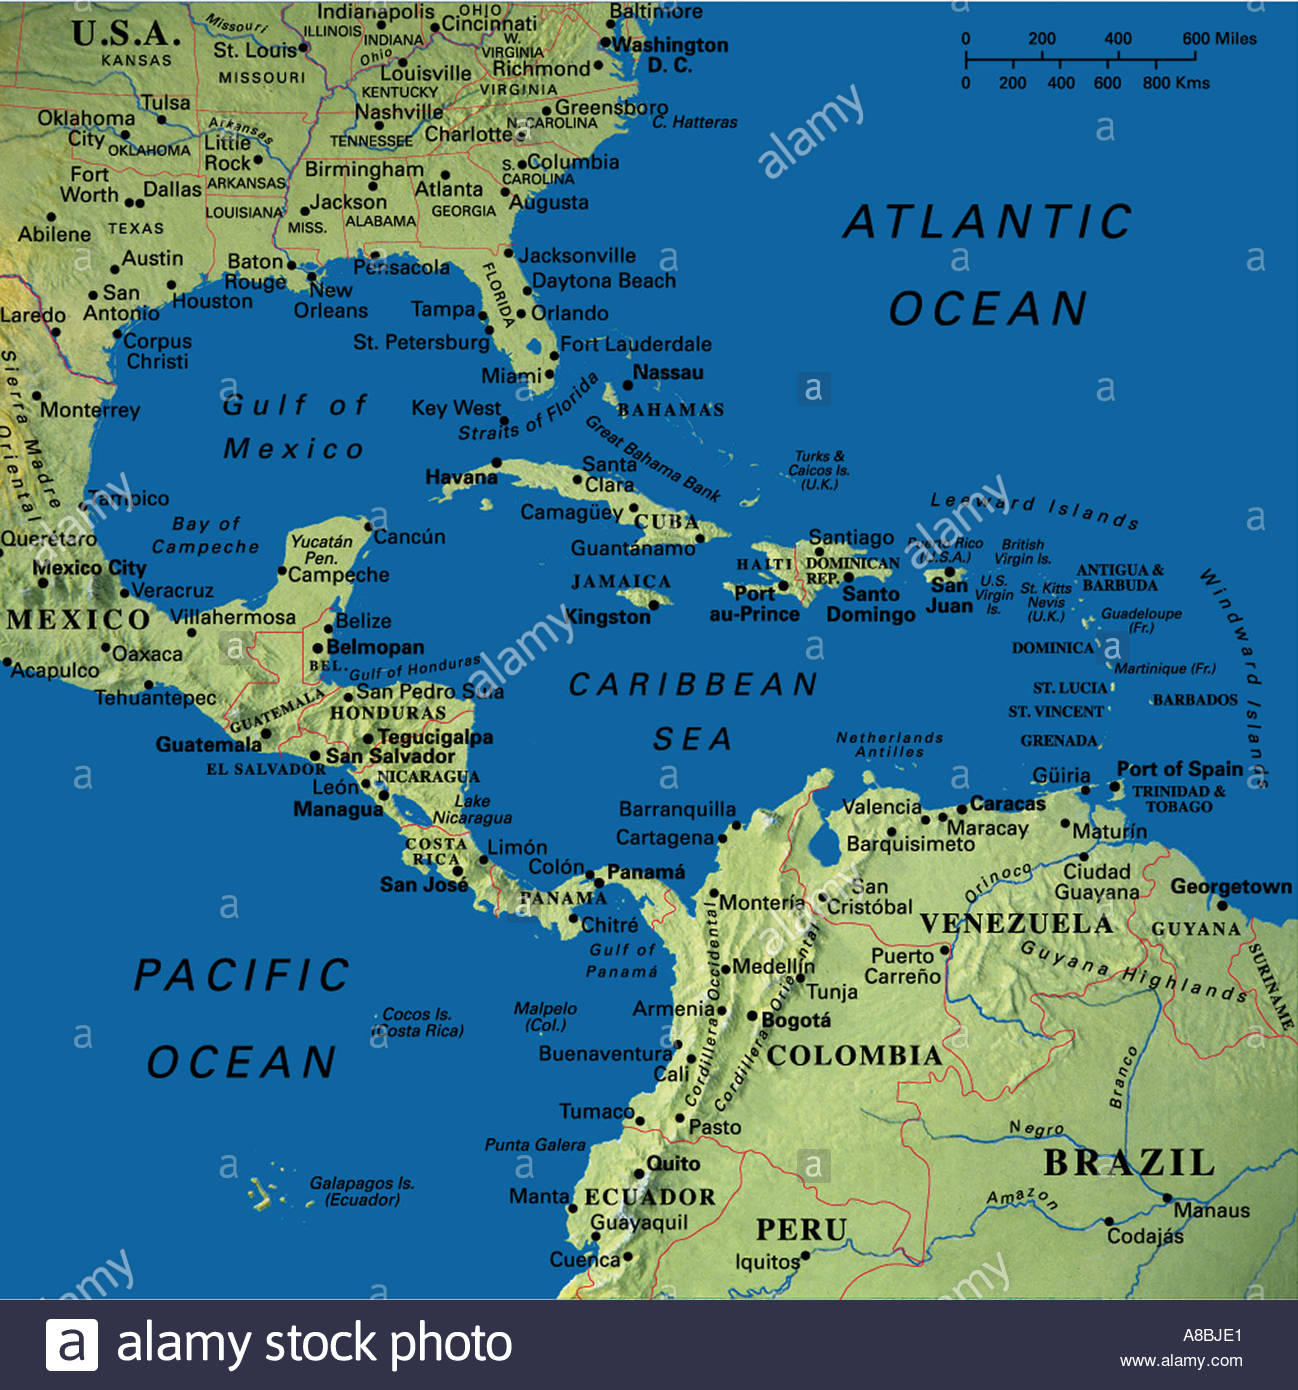 Map Maps USA Florida Canada Mexico Caribbean Cuba South America - Caribbean maps